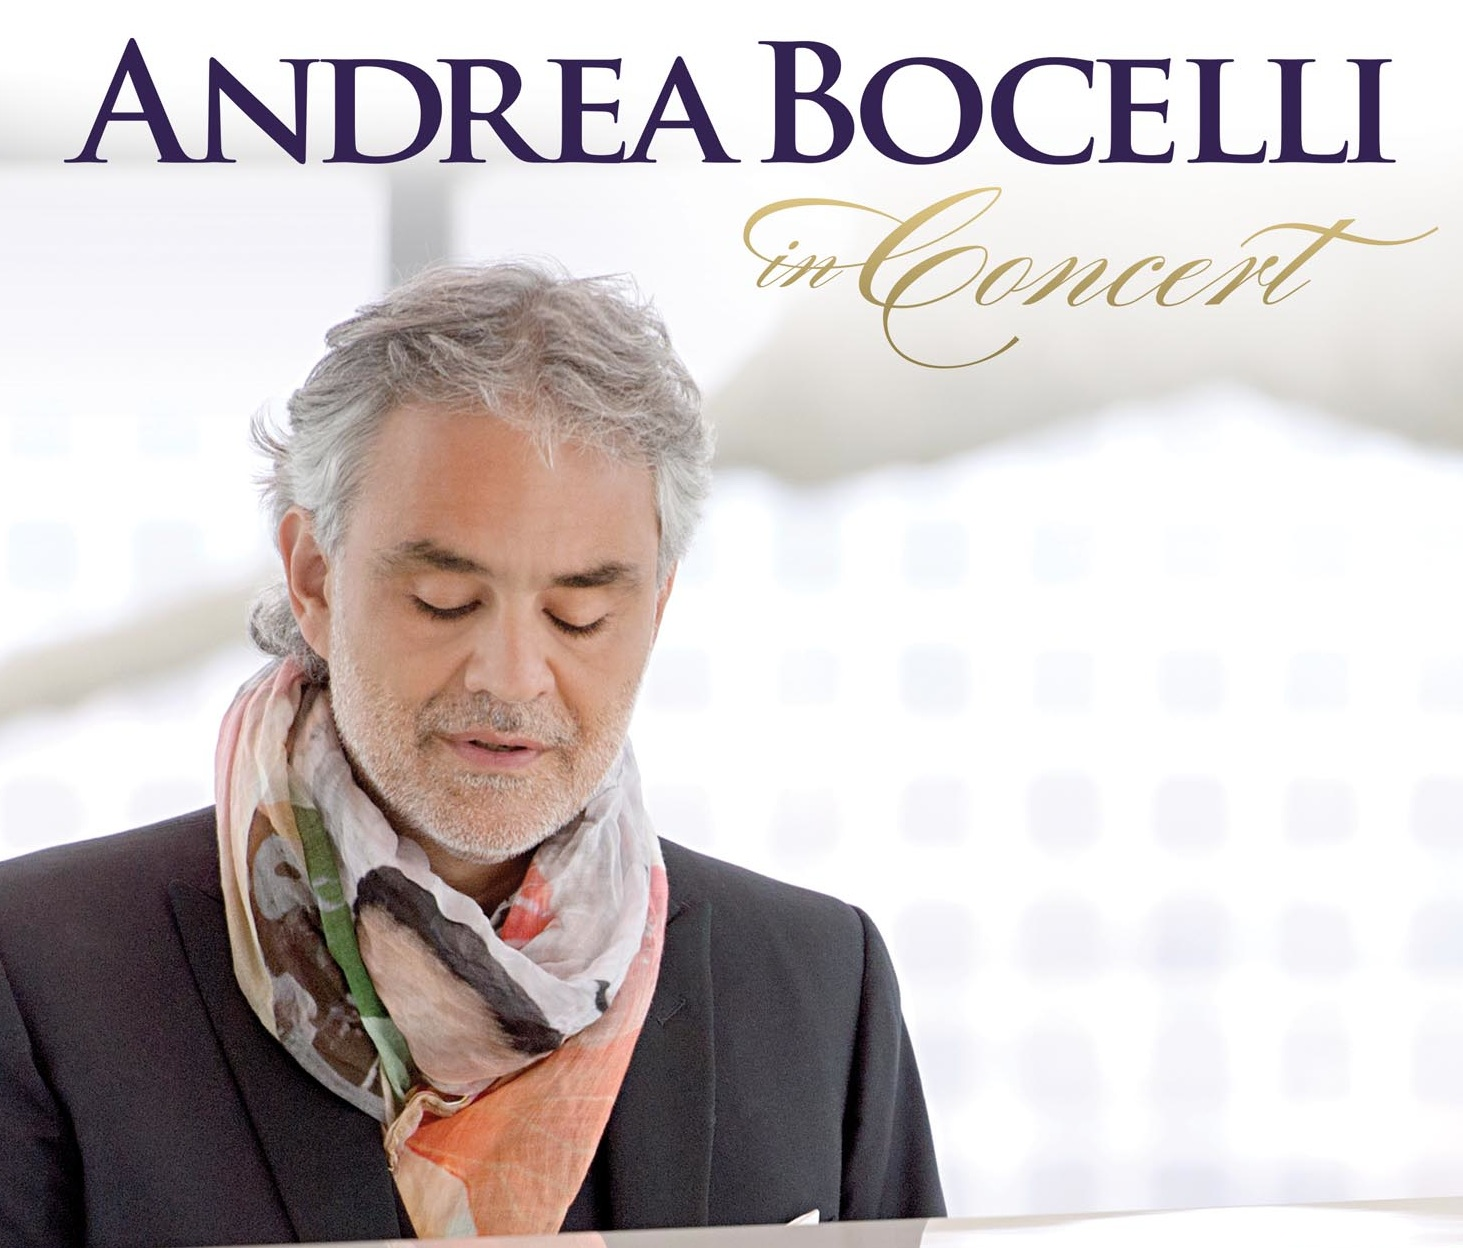 credit card sign up business cards online website credit card sign up credit report no credit card needed andrea bocelli in concert